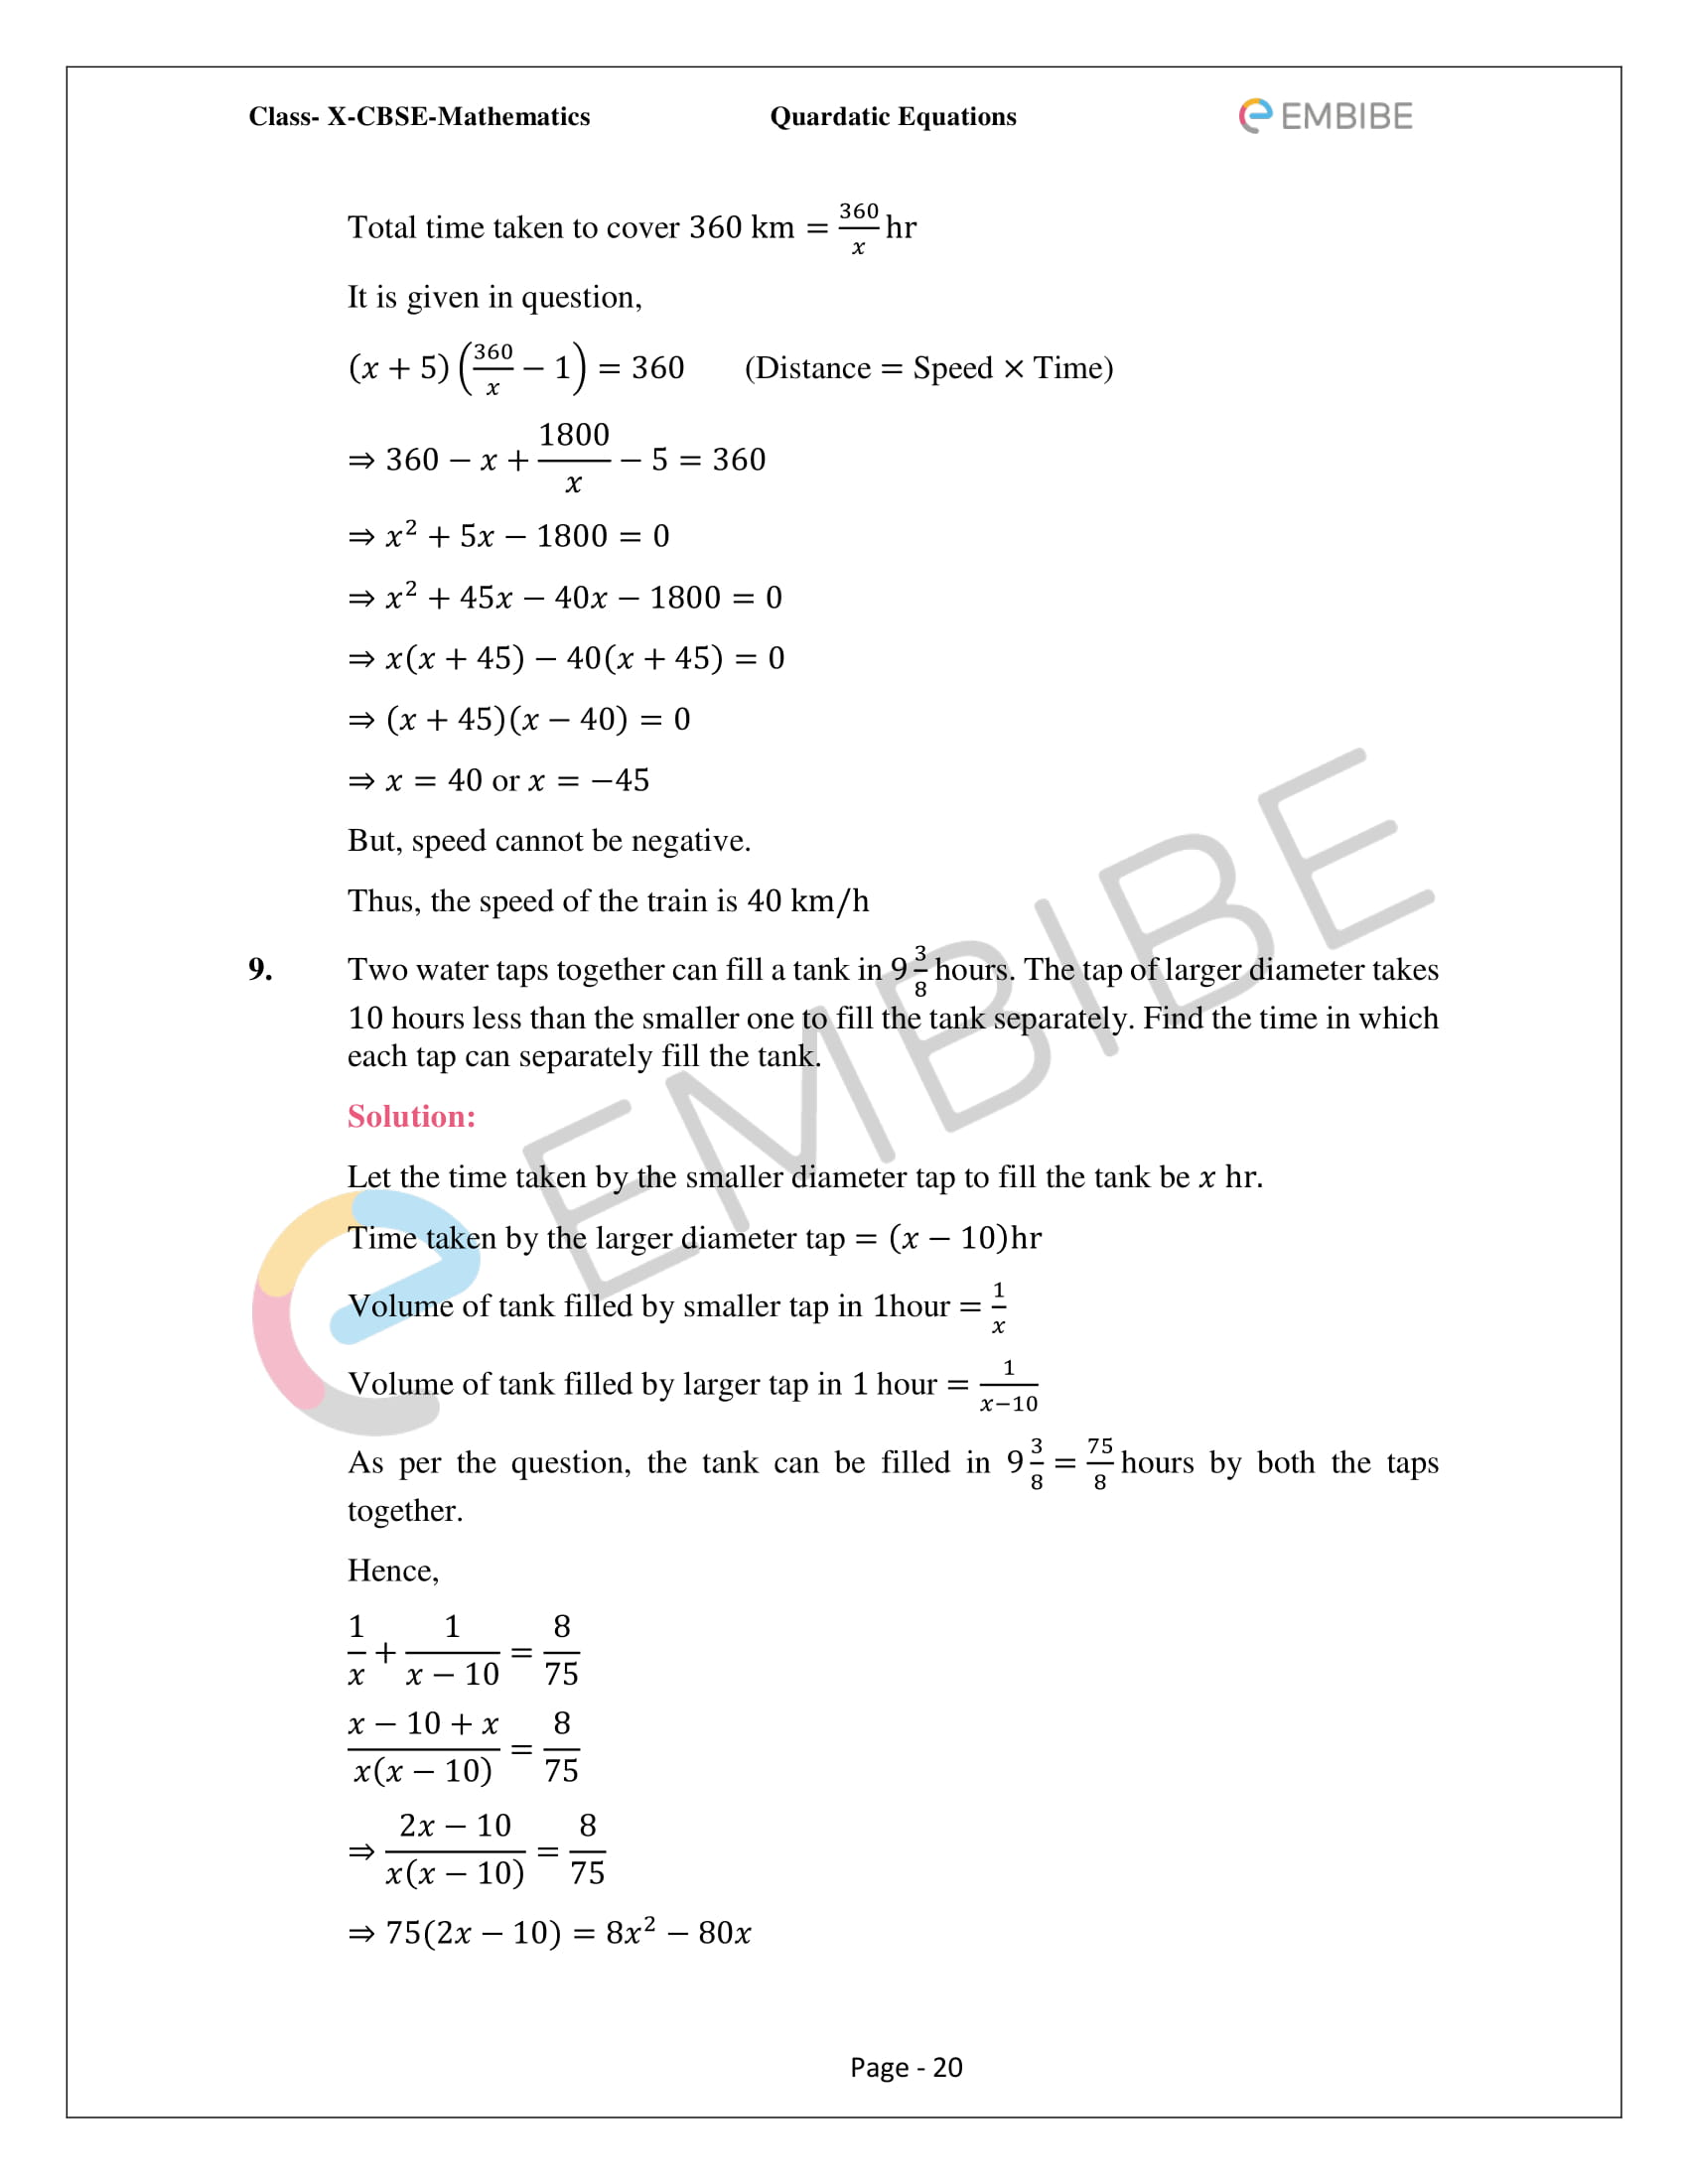 CBSE NCERT Solutions For Class 10 Maths Chapter 4 – Quadratic Equations - 20